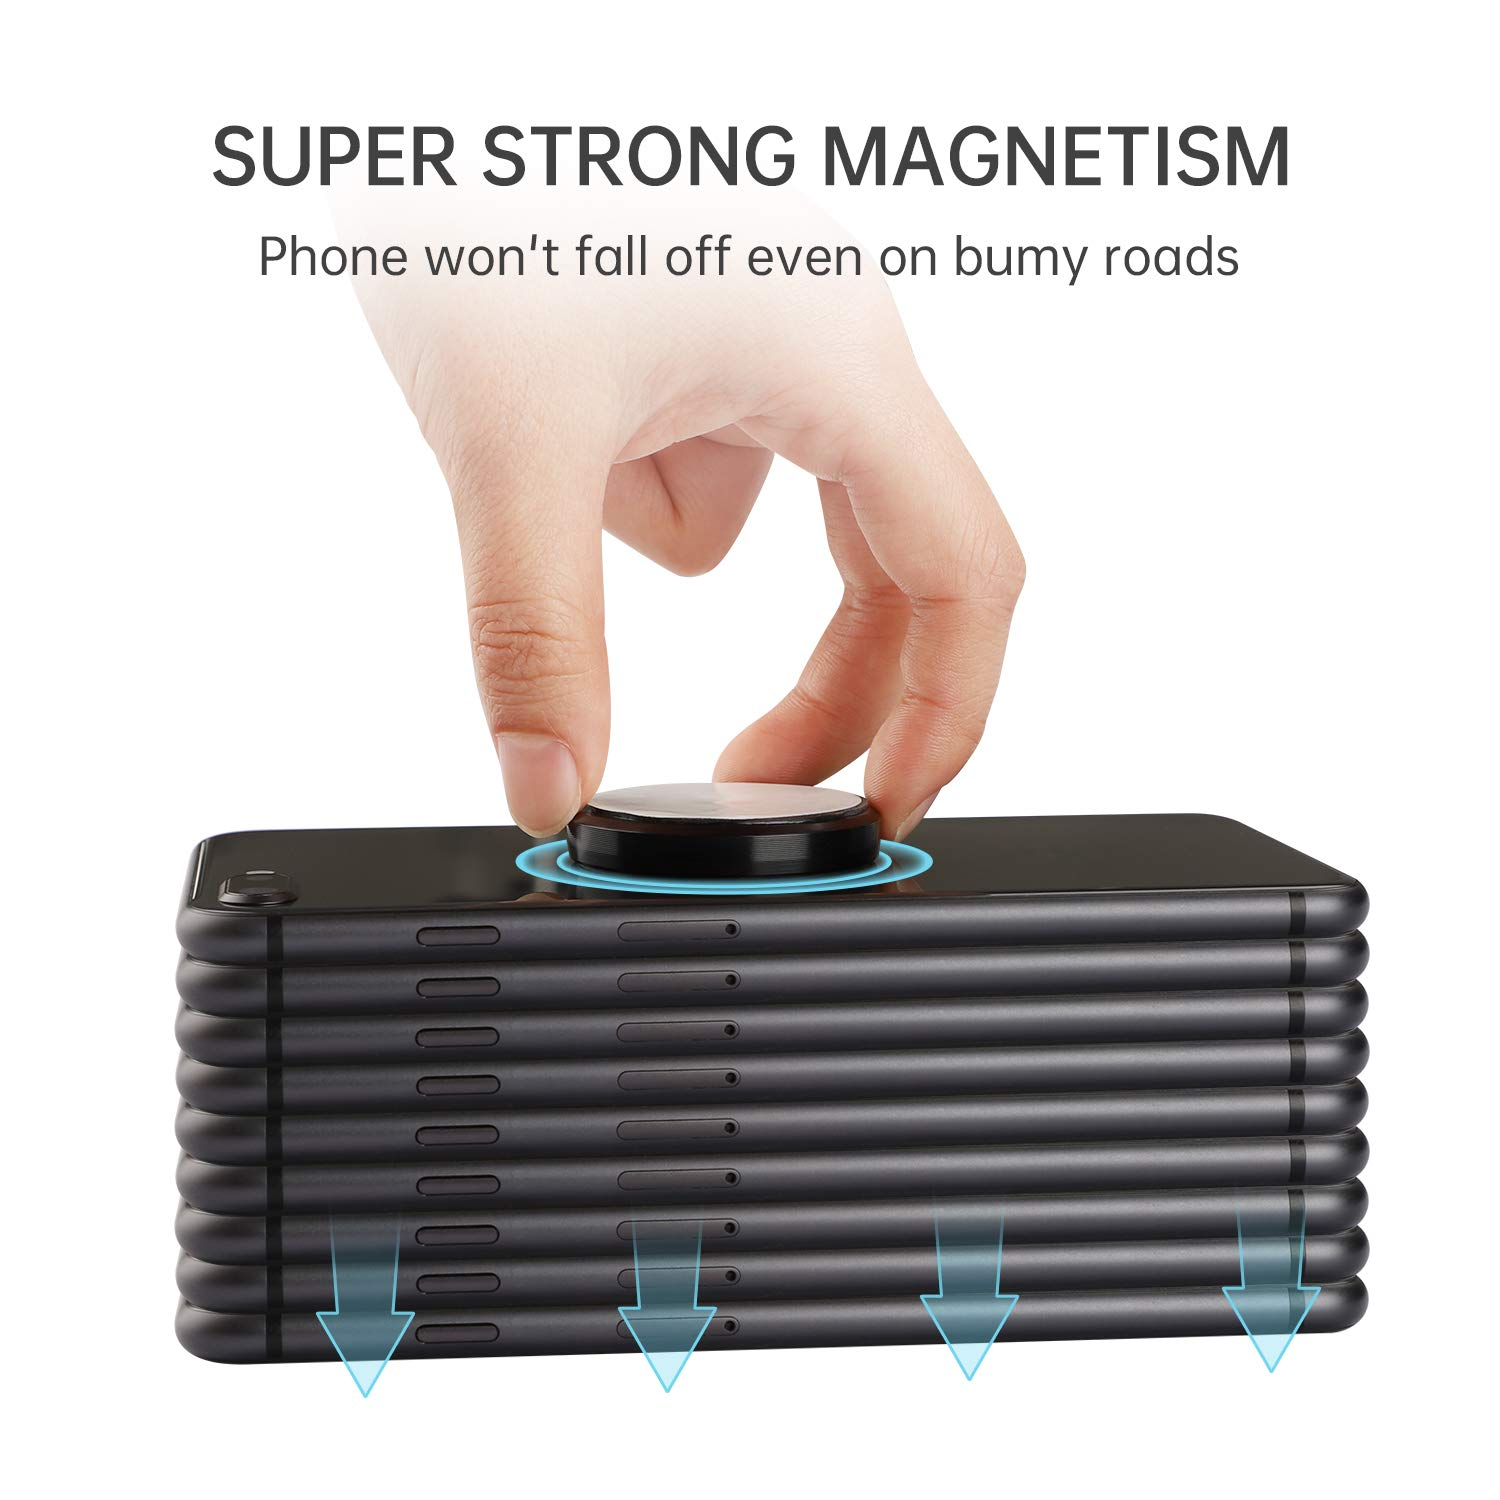 MENNYO Magnetic Phone Holder, 2 Pack Car Magnet Mount with Metal Plate Stick on Dashboard | Wall Magnet Sticker for iPhone 11/X/Xs/Xs Max/8 Samsung Galaxy S10/S9/S8/Note Huawei & Other Mobile Phones